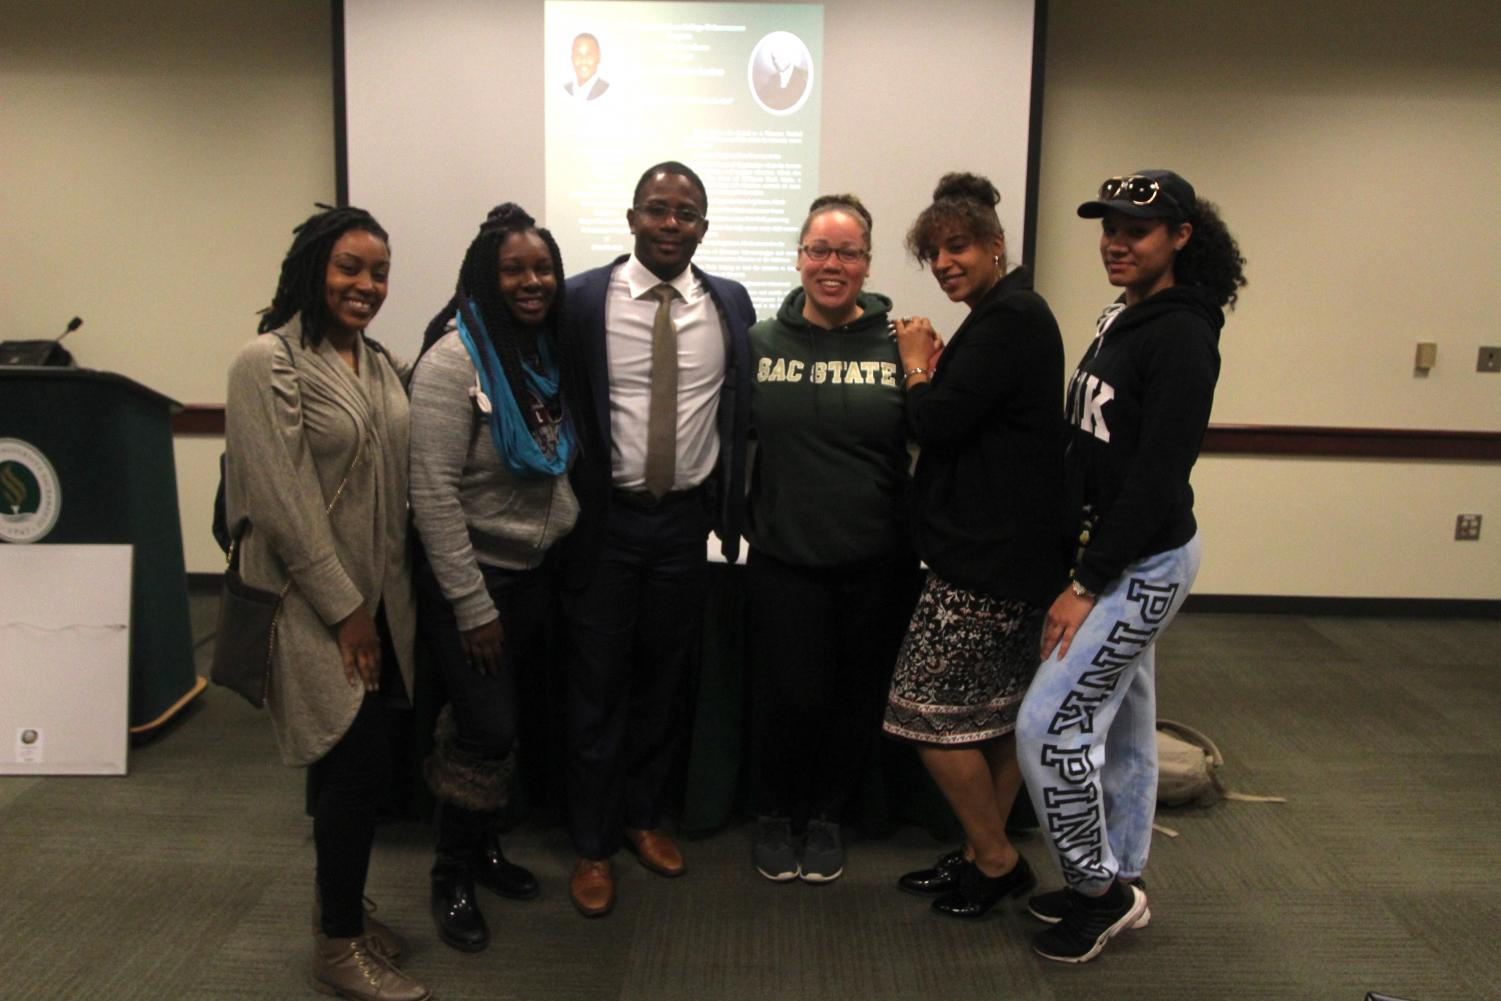 From left to right, Christina Bourn, Sabrina Harrell, Micah Grant, Ashley Robertson, Andrea Moore and Brittney LeBlue pose for a picture after the Cooper G. Woodson lecture on Feb., 20, 2018. The Cooper-Woodson Scholars are required by the program to attend both the Woodson lecture as well as the Anna J. Cooper lecture every year.